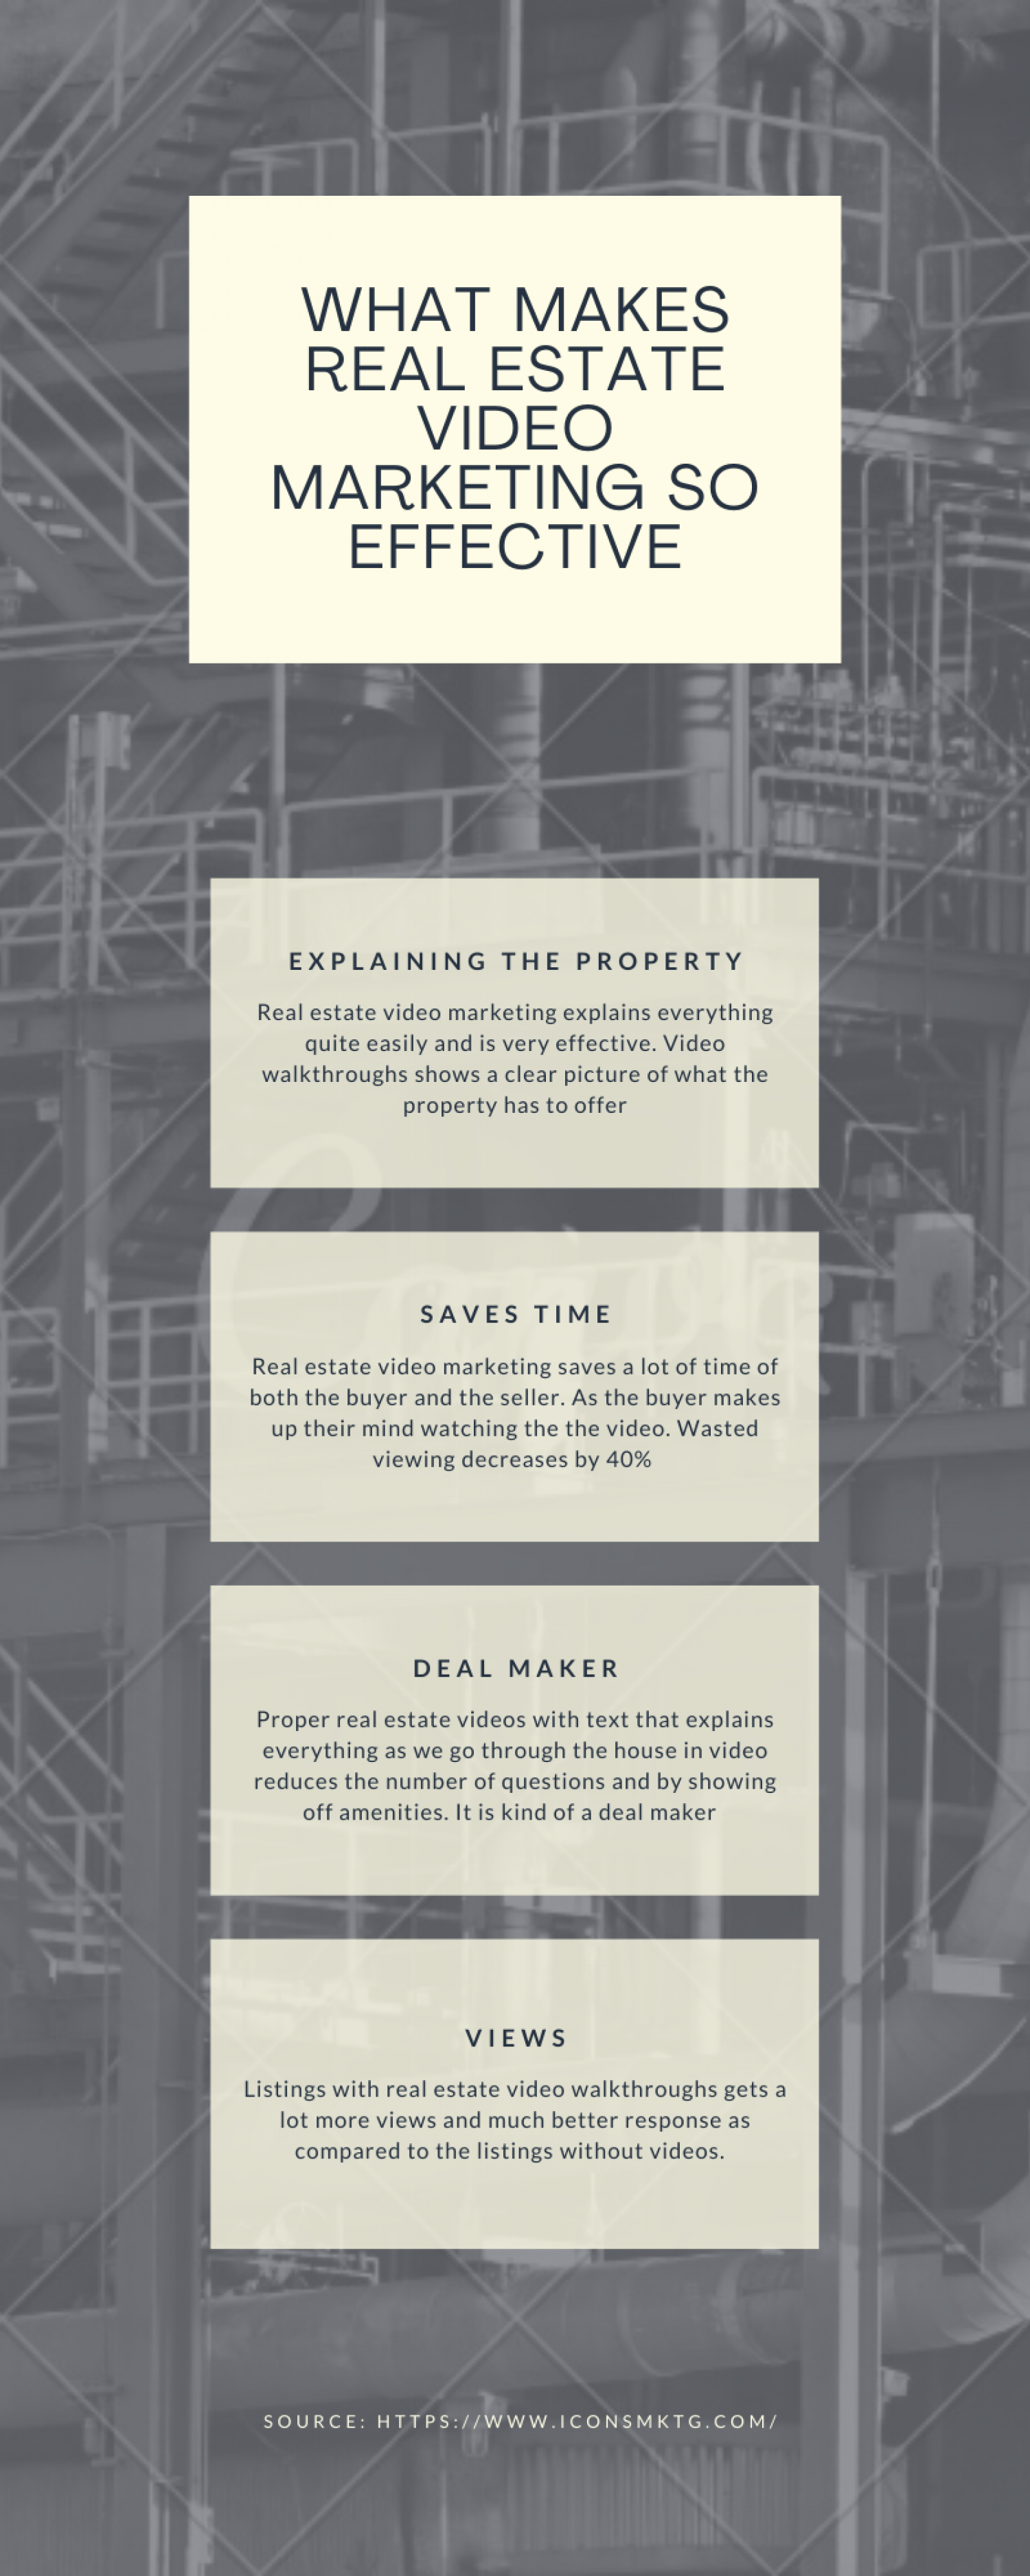 WHAT MAKES REAL ESTATE VIDEO MARKETING SO EFFECTIVE Infographic